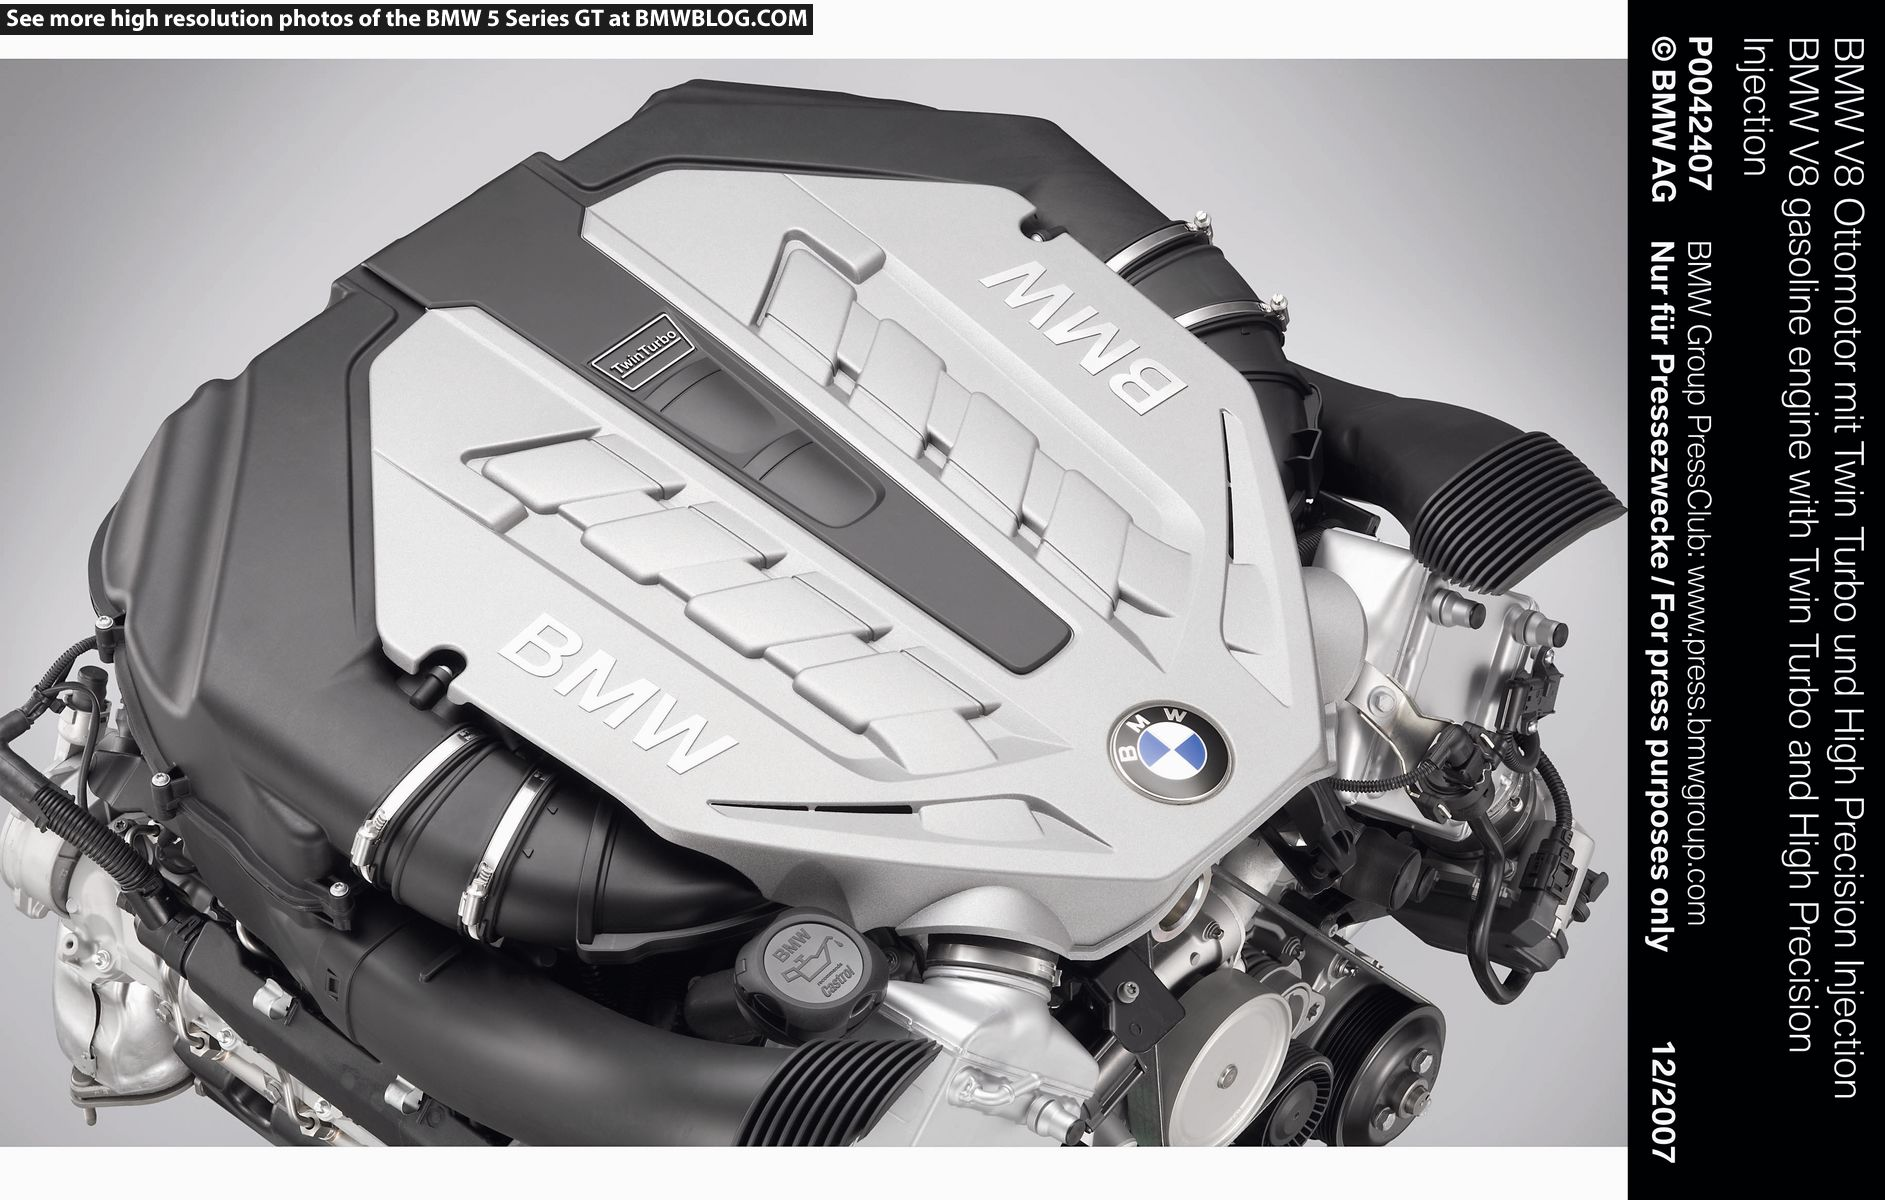 Pleasant Bmw To Replace Faulty Timing Chain In 2008 2014 Vehicles Wiring Cloud Waroletkolfr09Org